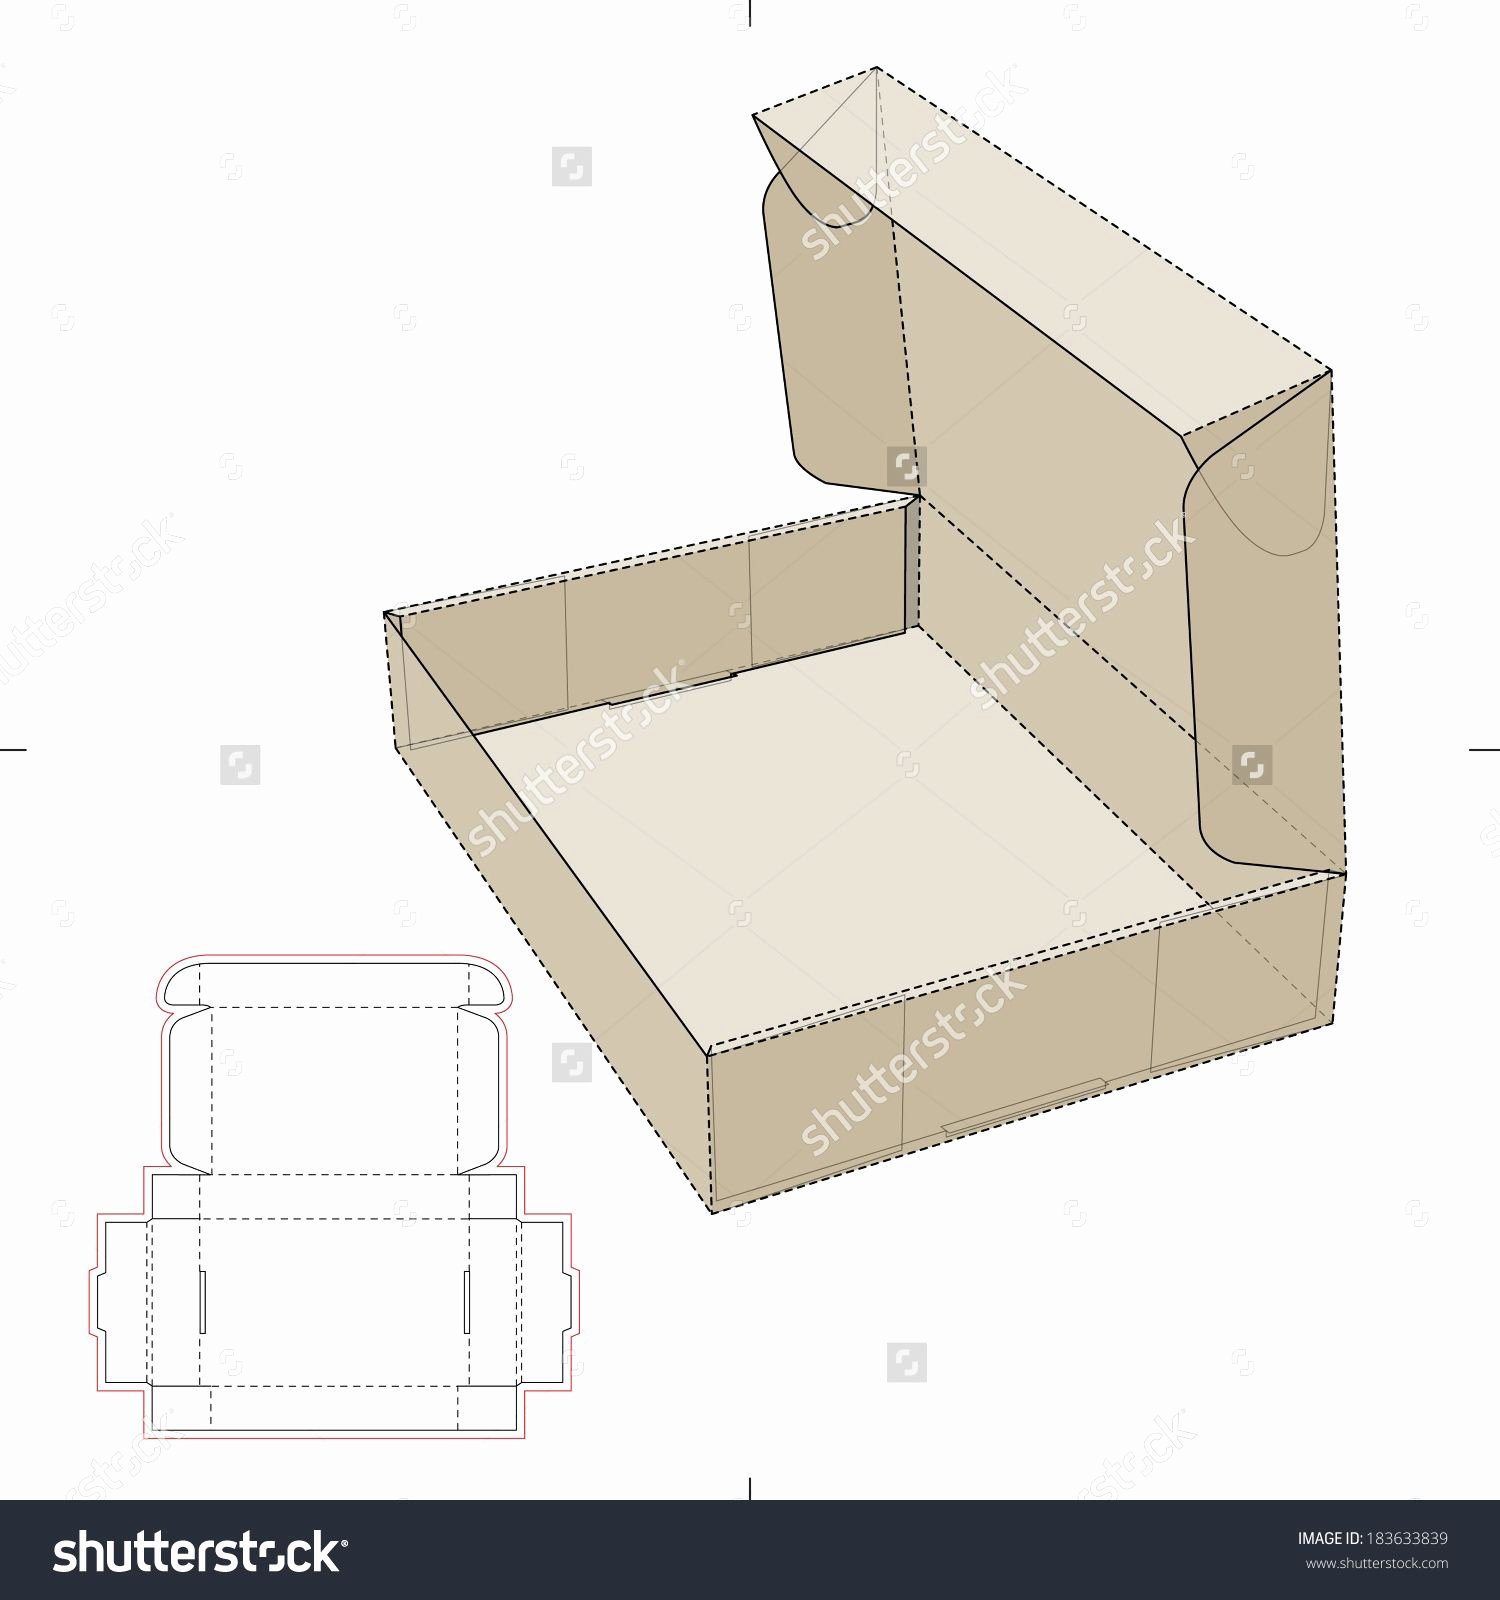 Box Cut Out Patterns Elegant Cardboard Flat Box with Die Cut Pattern Stock Vector